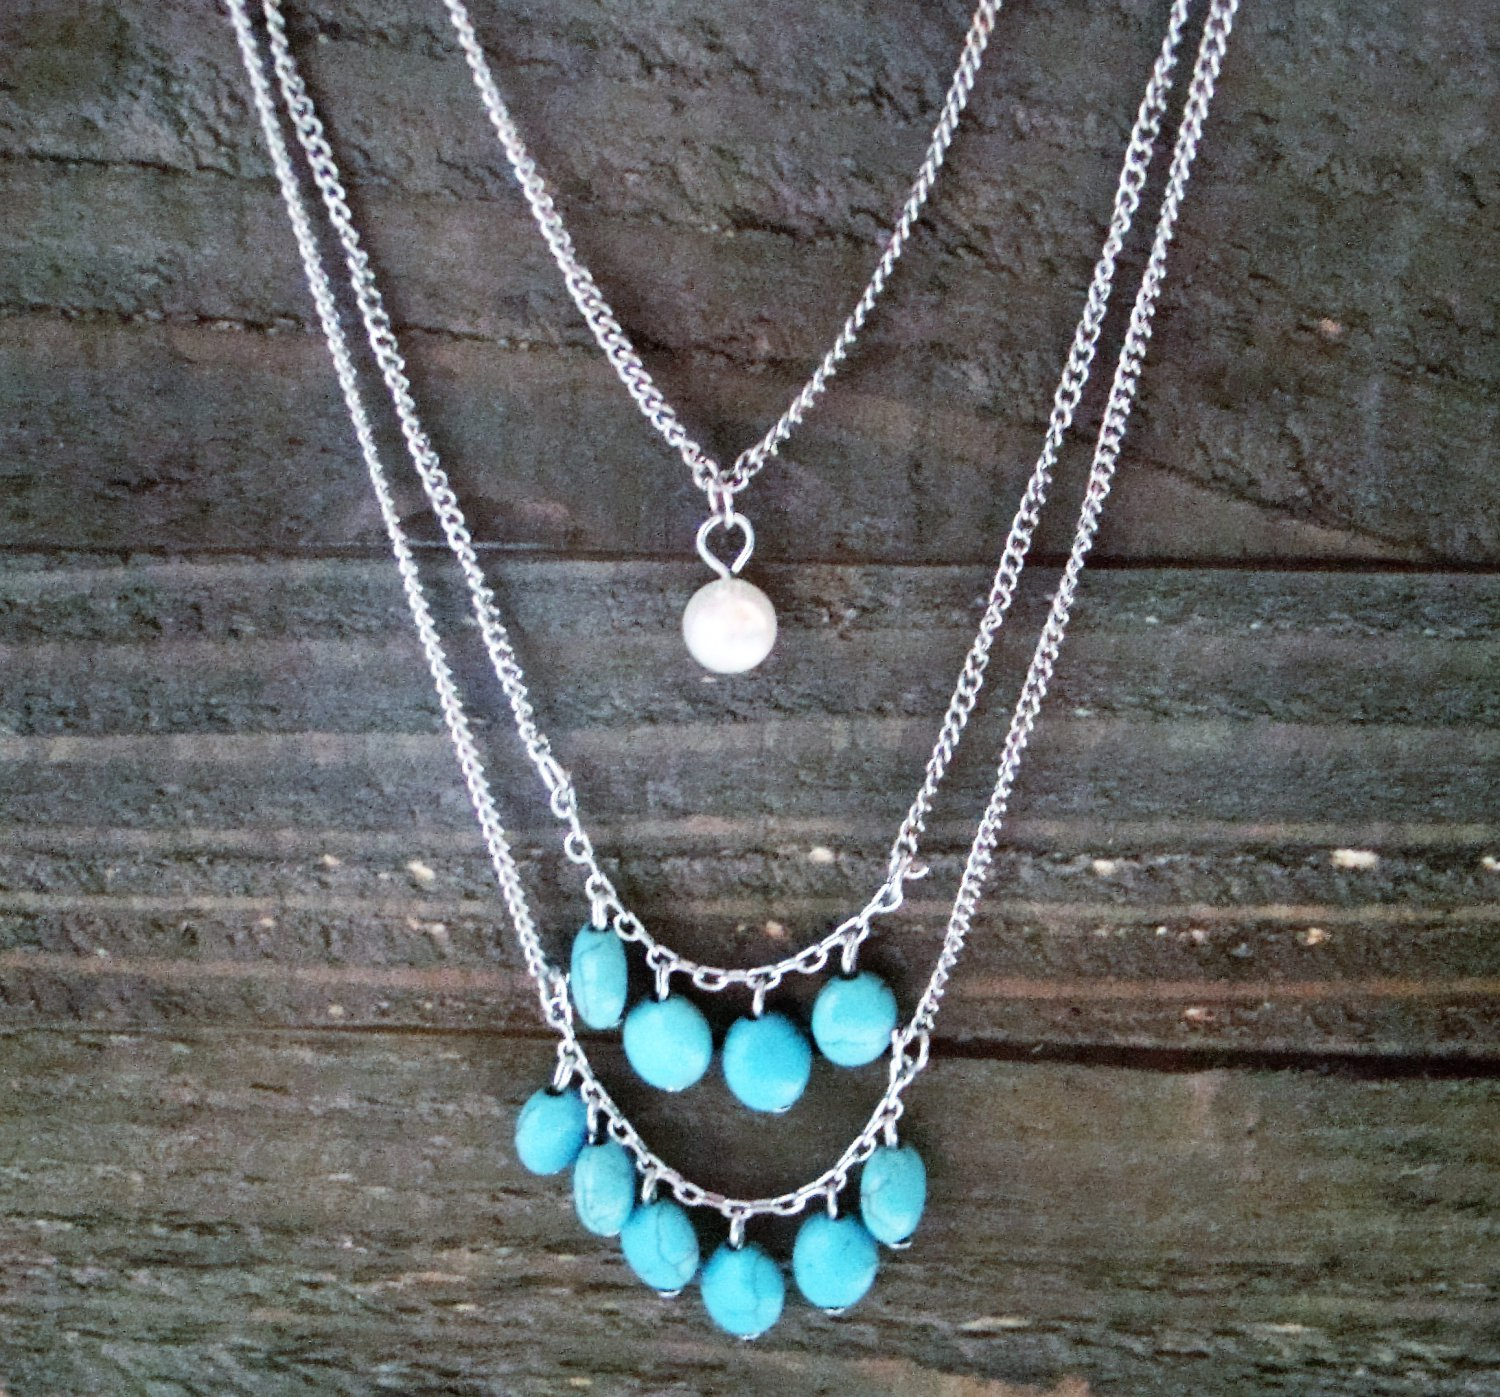 Long 3 Layer Dangle Turquoise Faux Pearl Adjustable Silver Tone Necklace Fashion Jewelry